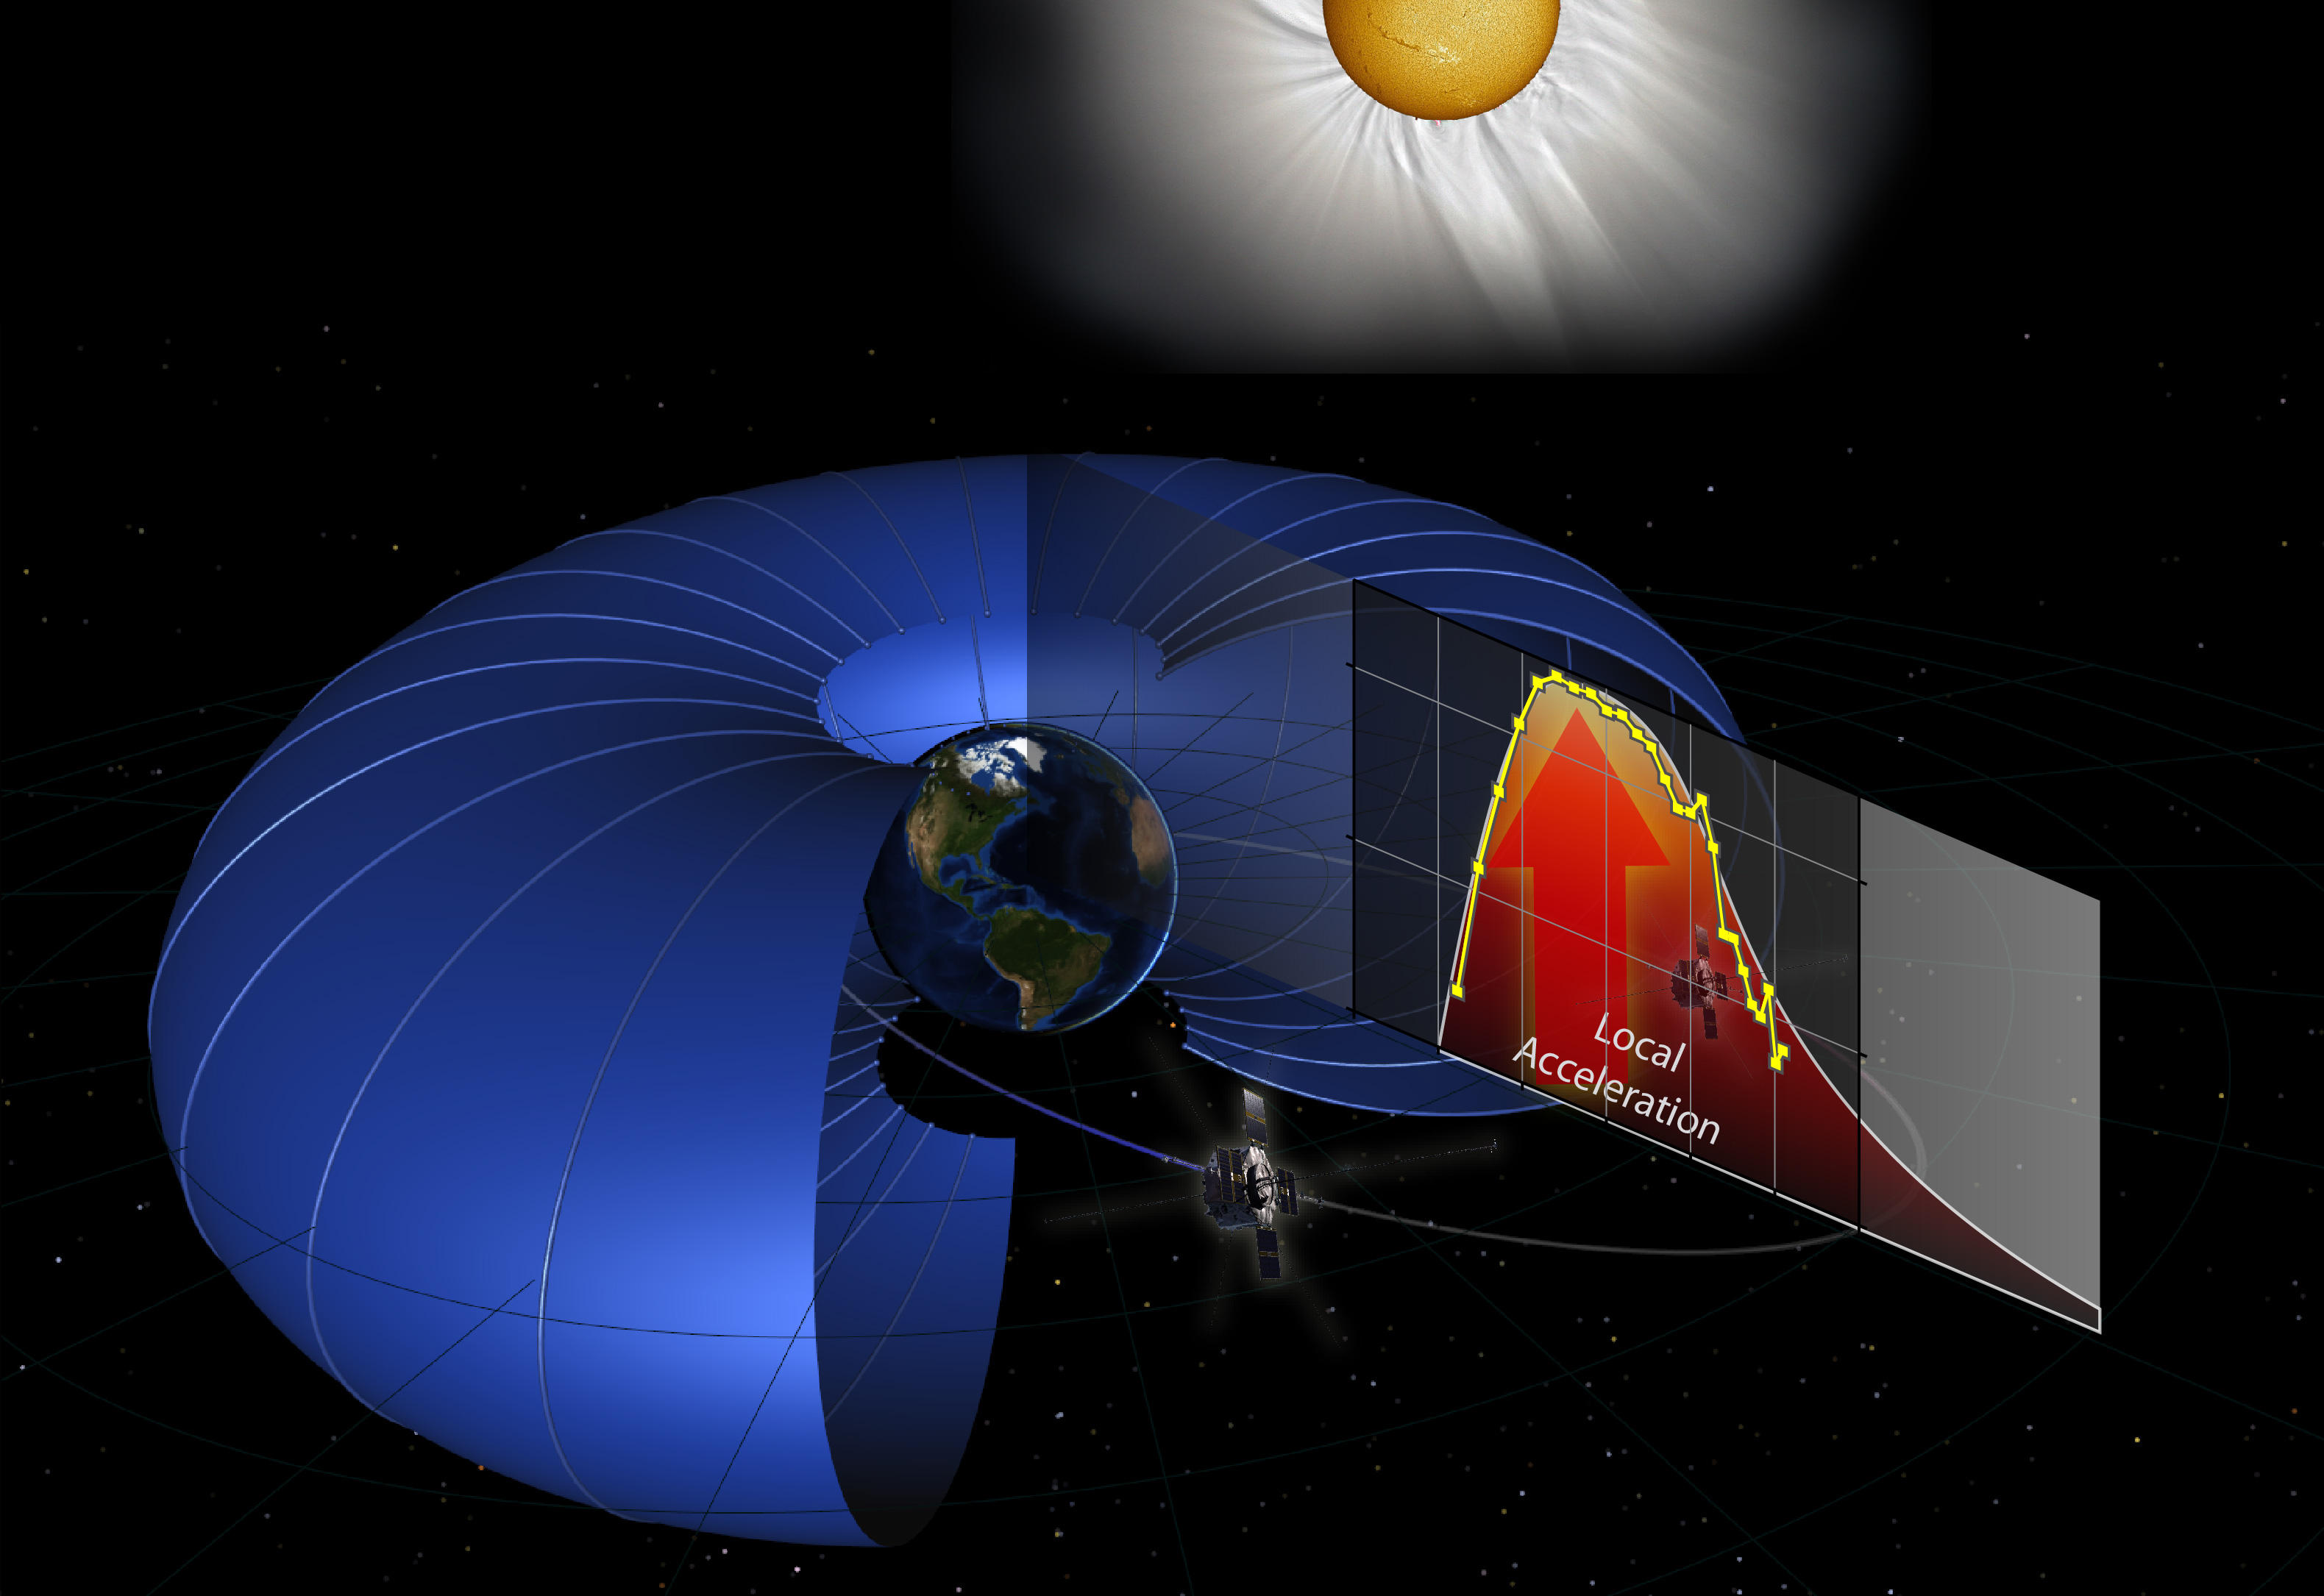 Twentieth international summer school on vacuum electron and ion - Nasa S Van Allen Probes Discover Particle Accelerator In The Heart Of Earth S Radiation Belts